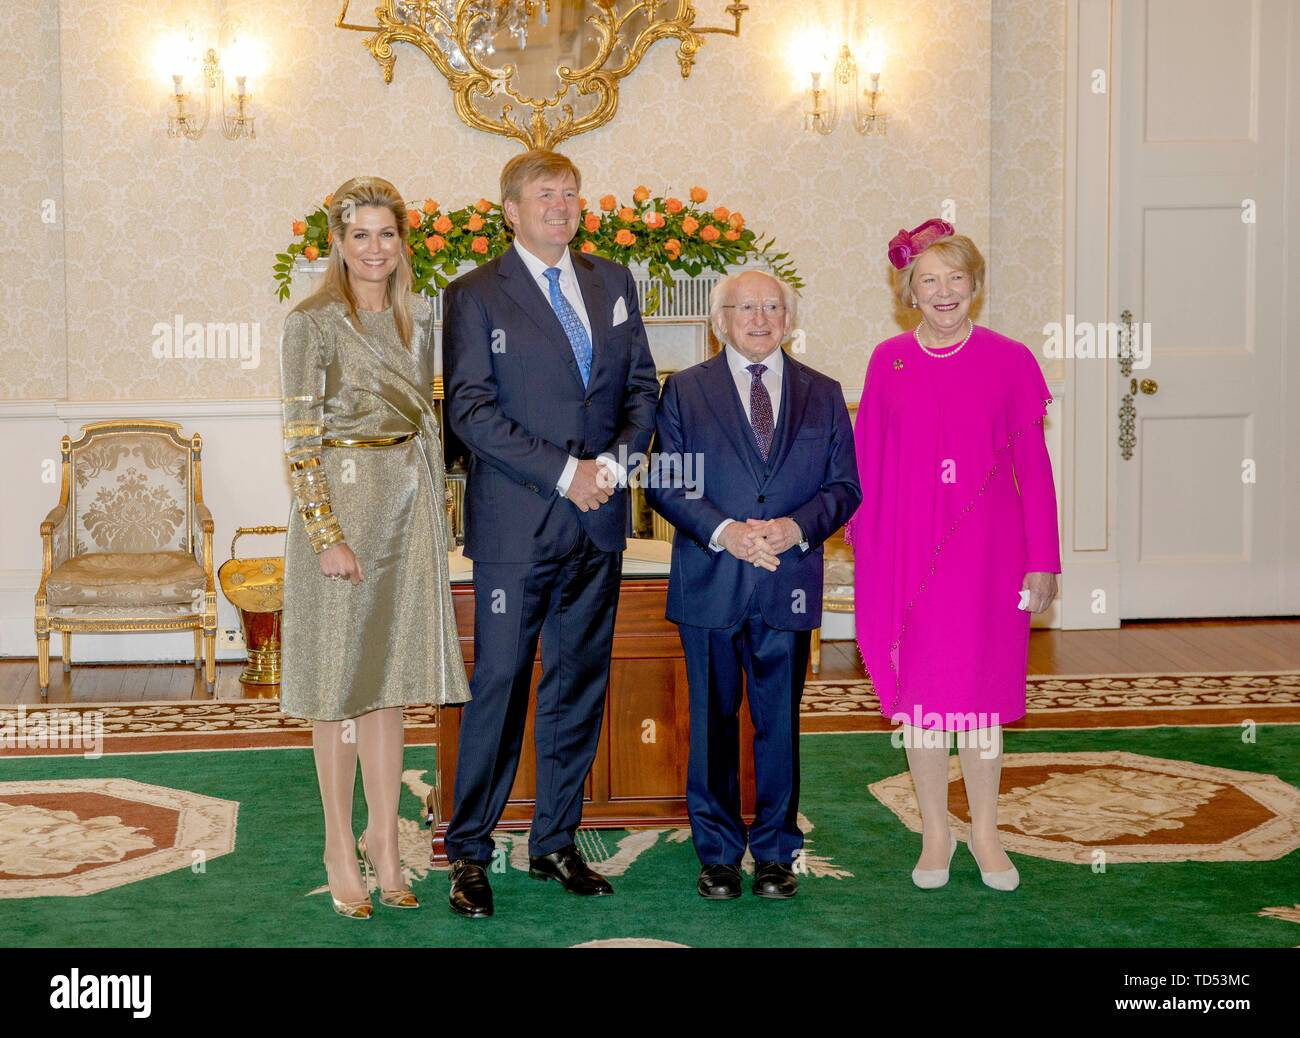 Dublin, Ireland. 12th June, 2019. King Willem-Alexander and Queen Maxima of The Netherlands are received by President Higgins and his wife Sabina Higgins at A?ras an Uachtara?in, the Presidential Palace in Dublin, on June 12, 2019, at the 1st of a 3 days State-visit to Ireland Photo : Albert Nieboer/ Netherlands OUT/Point de Vue OUT | Credit: dpa/Alamy Live News - Stock Image